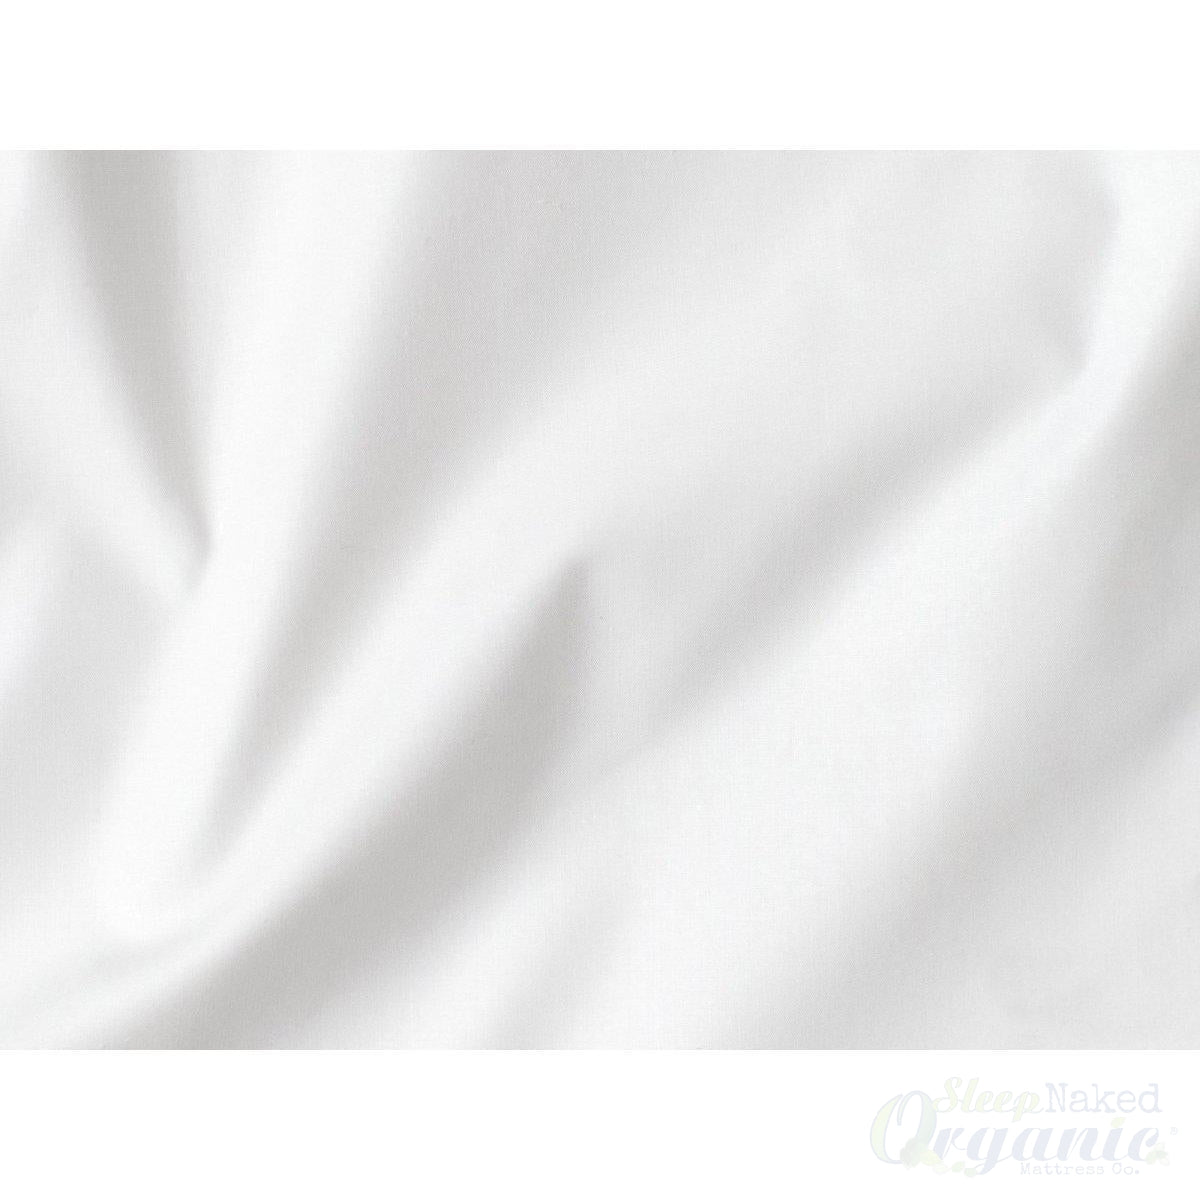 Obasan Organic Sheet Set-OBASAN-Sleep Naked Organic Mattress Store